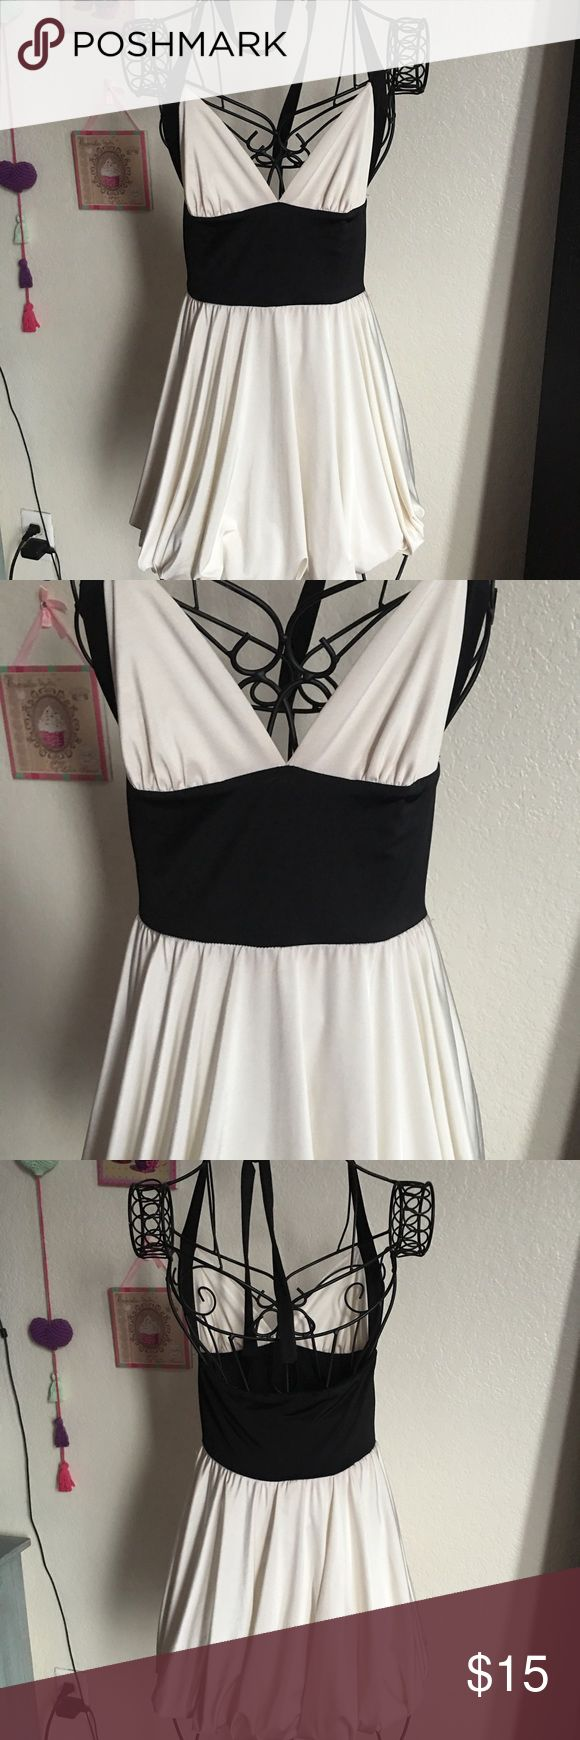 Black and White Mini Party Dress Black and White Mini Party Dress Dresses Mini